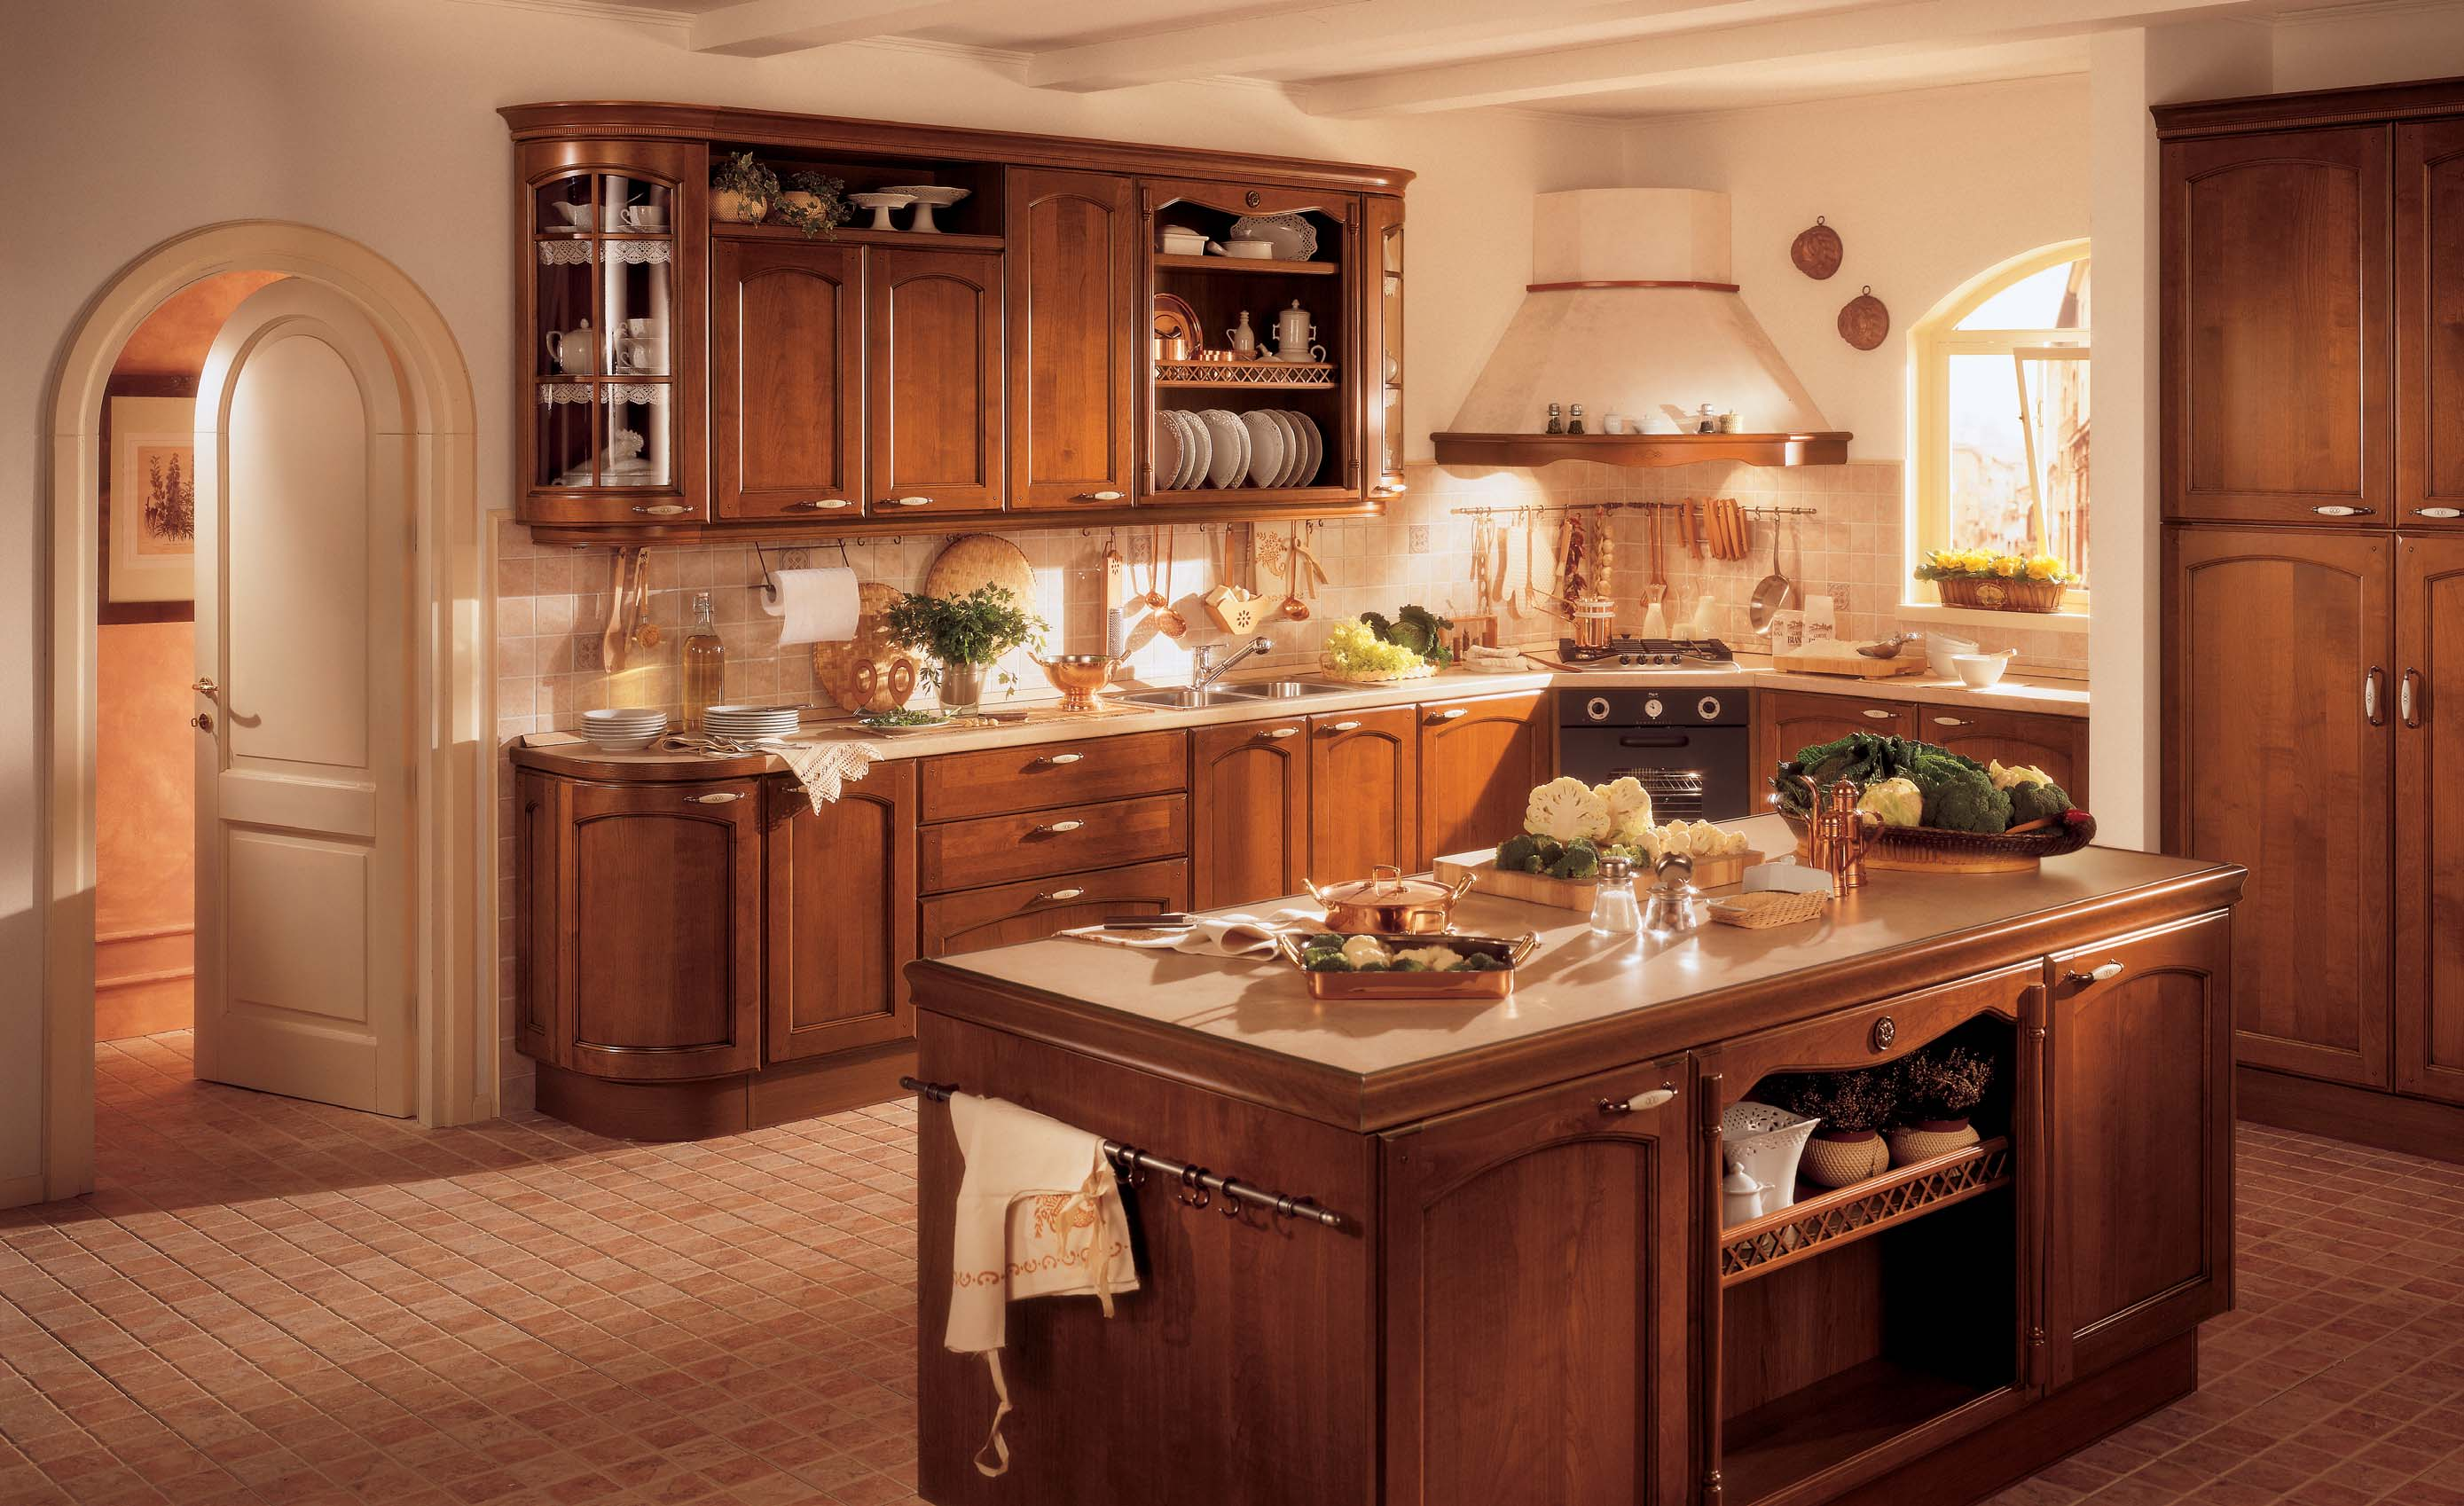 Epoca classic kitchen interior design - Interior design kitchen ...